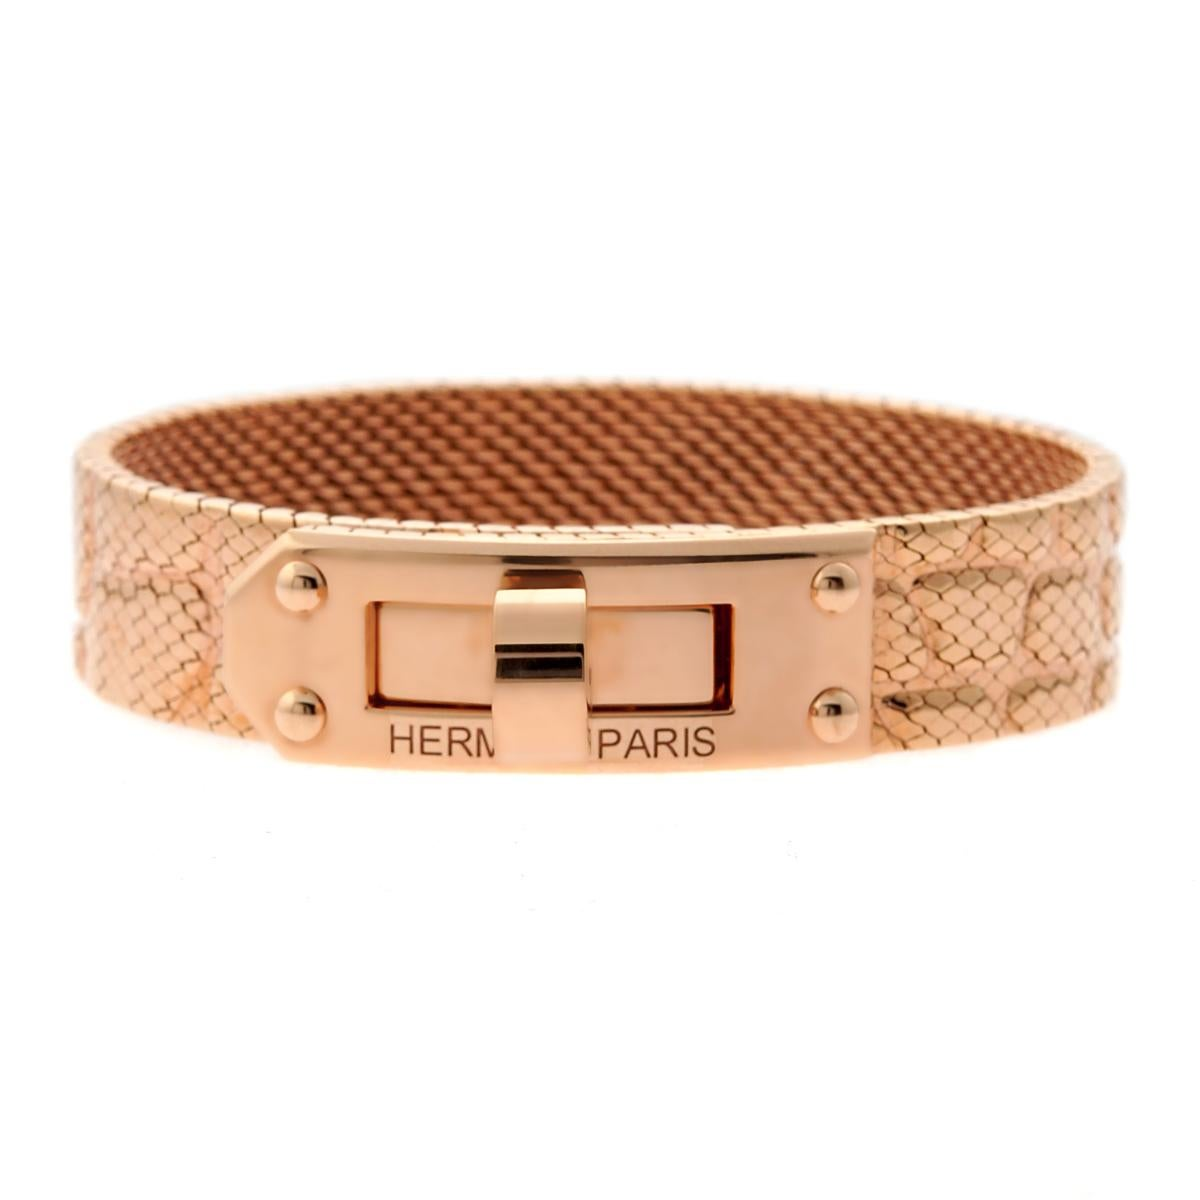 Hermès Jewelry   Watches - 223 For Sale at 1stdibs 7d5a25fcf4c